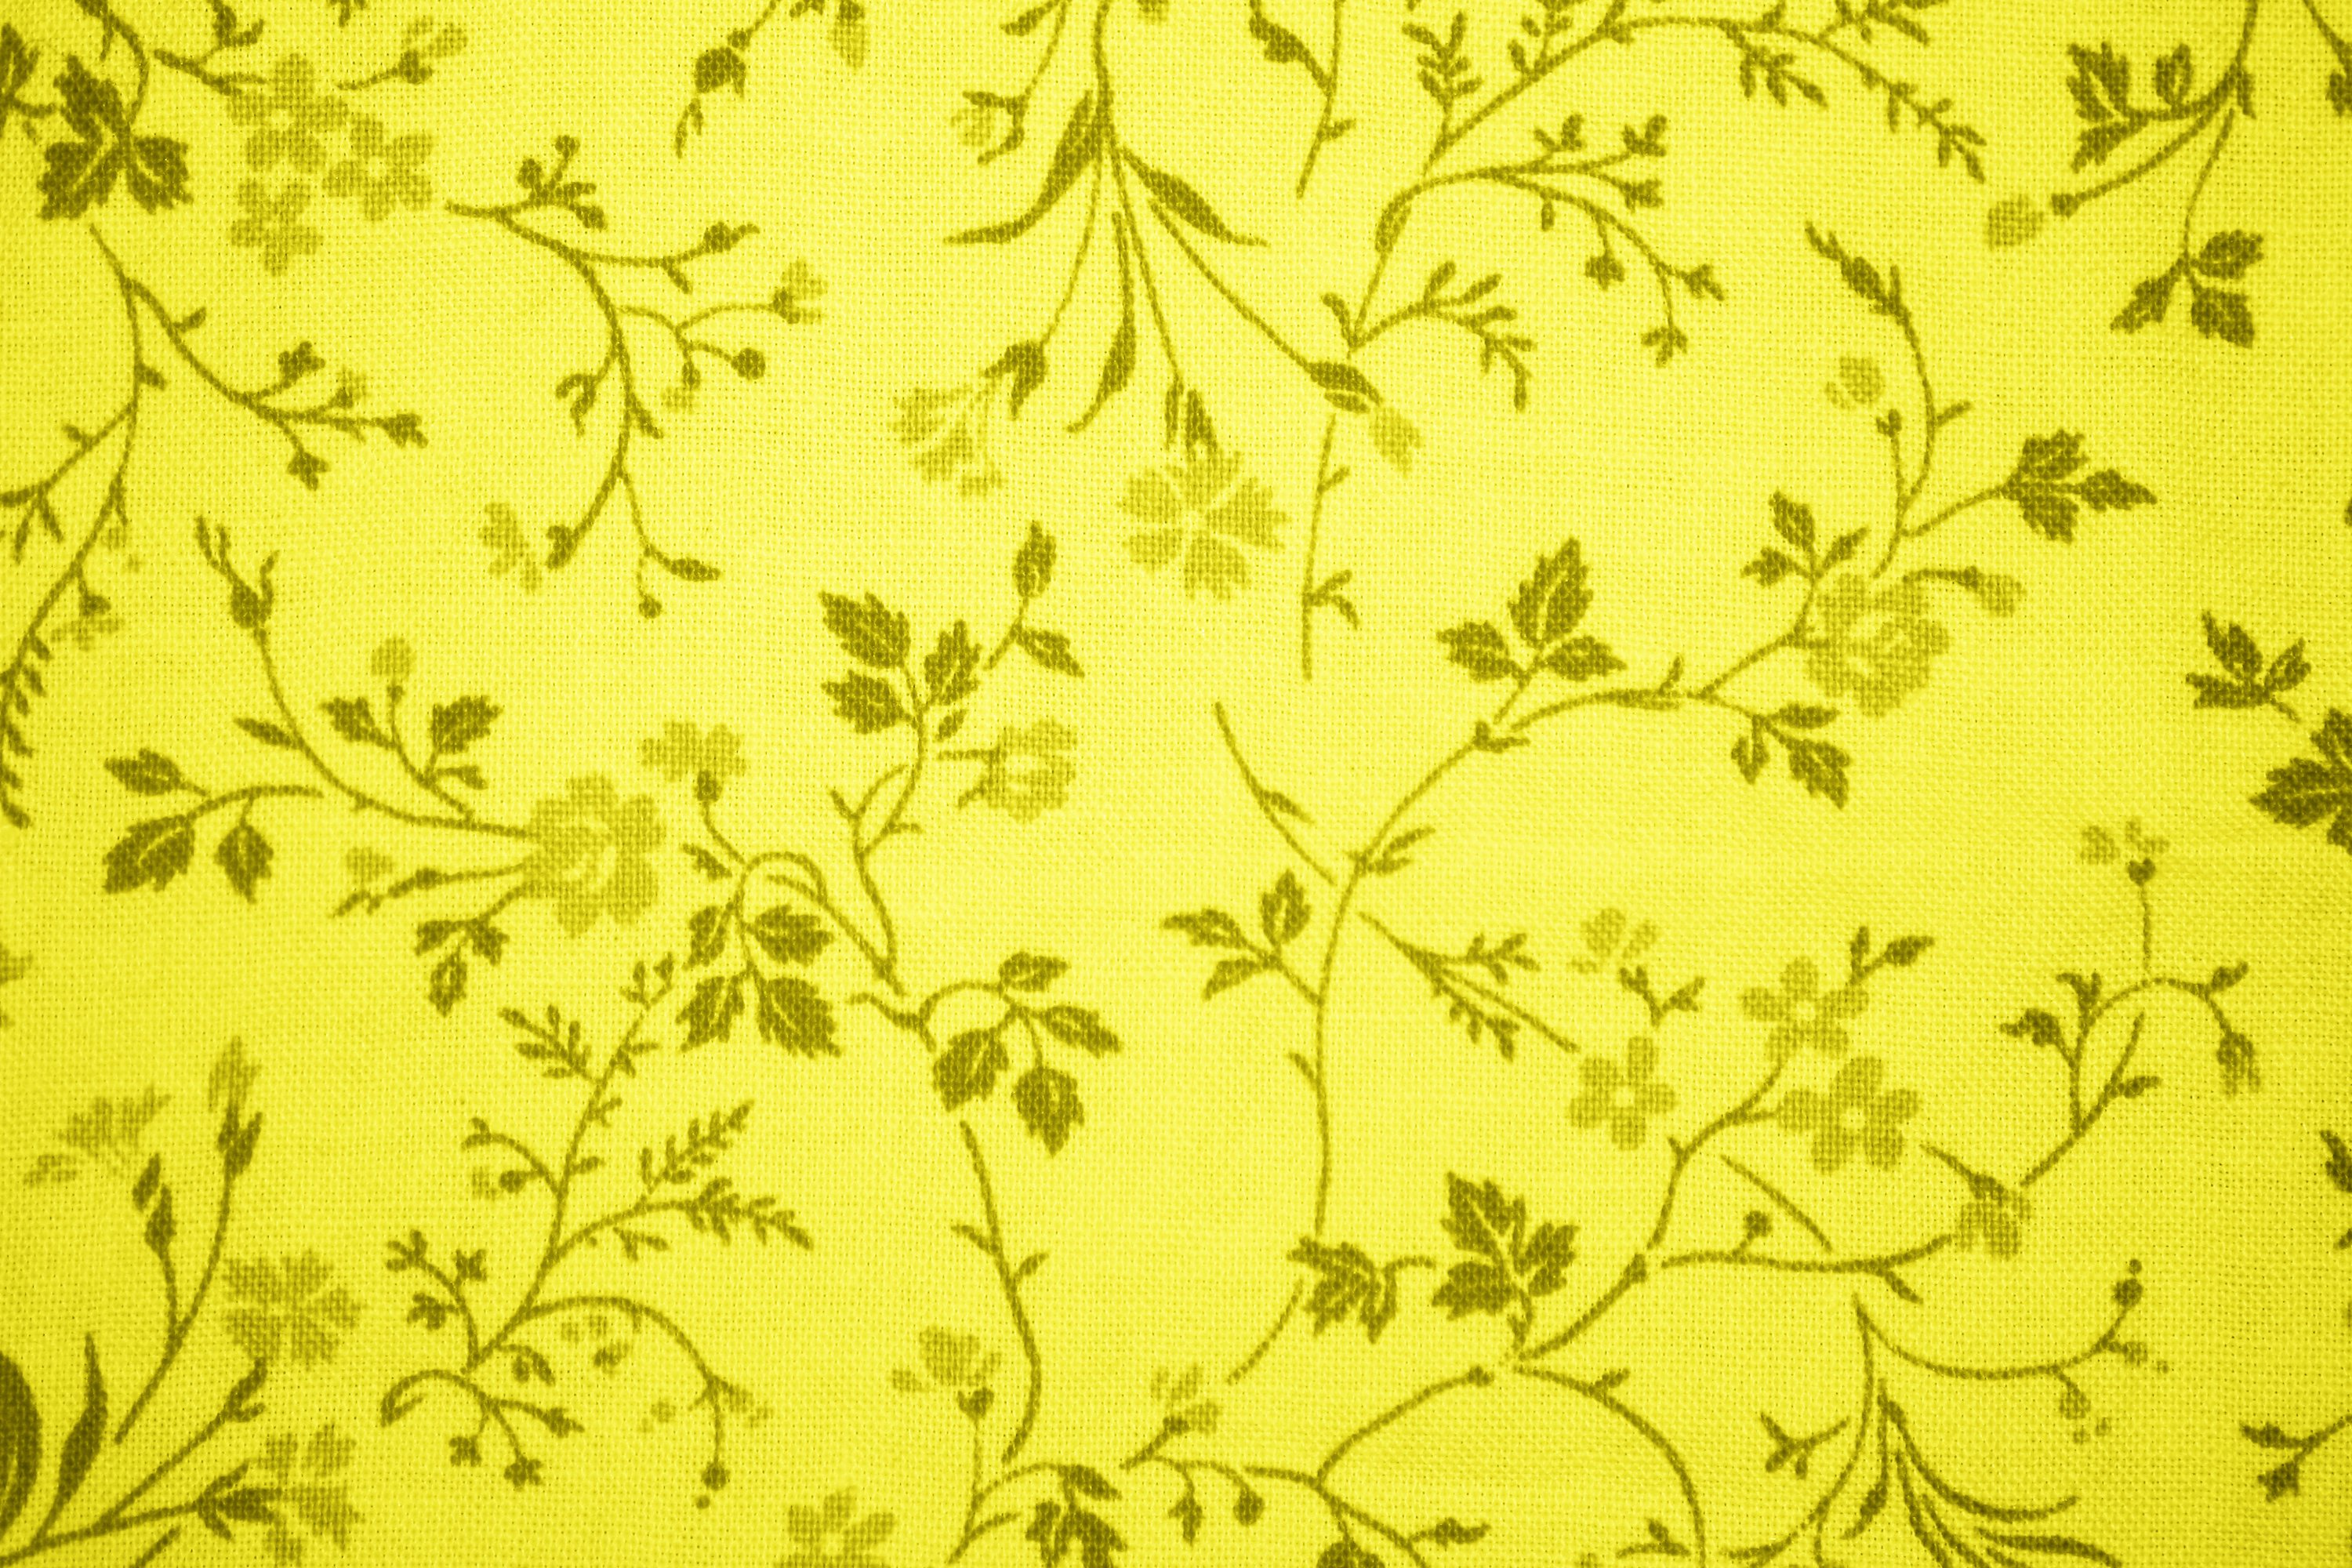 Yellow Floral Print Fabric Texture Picture Free Photograph